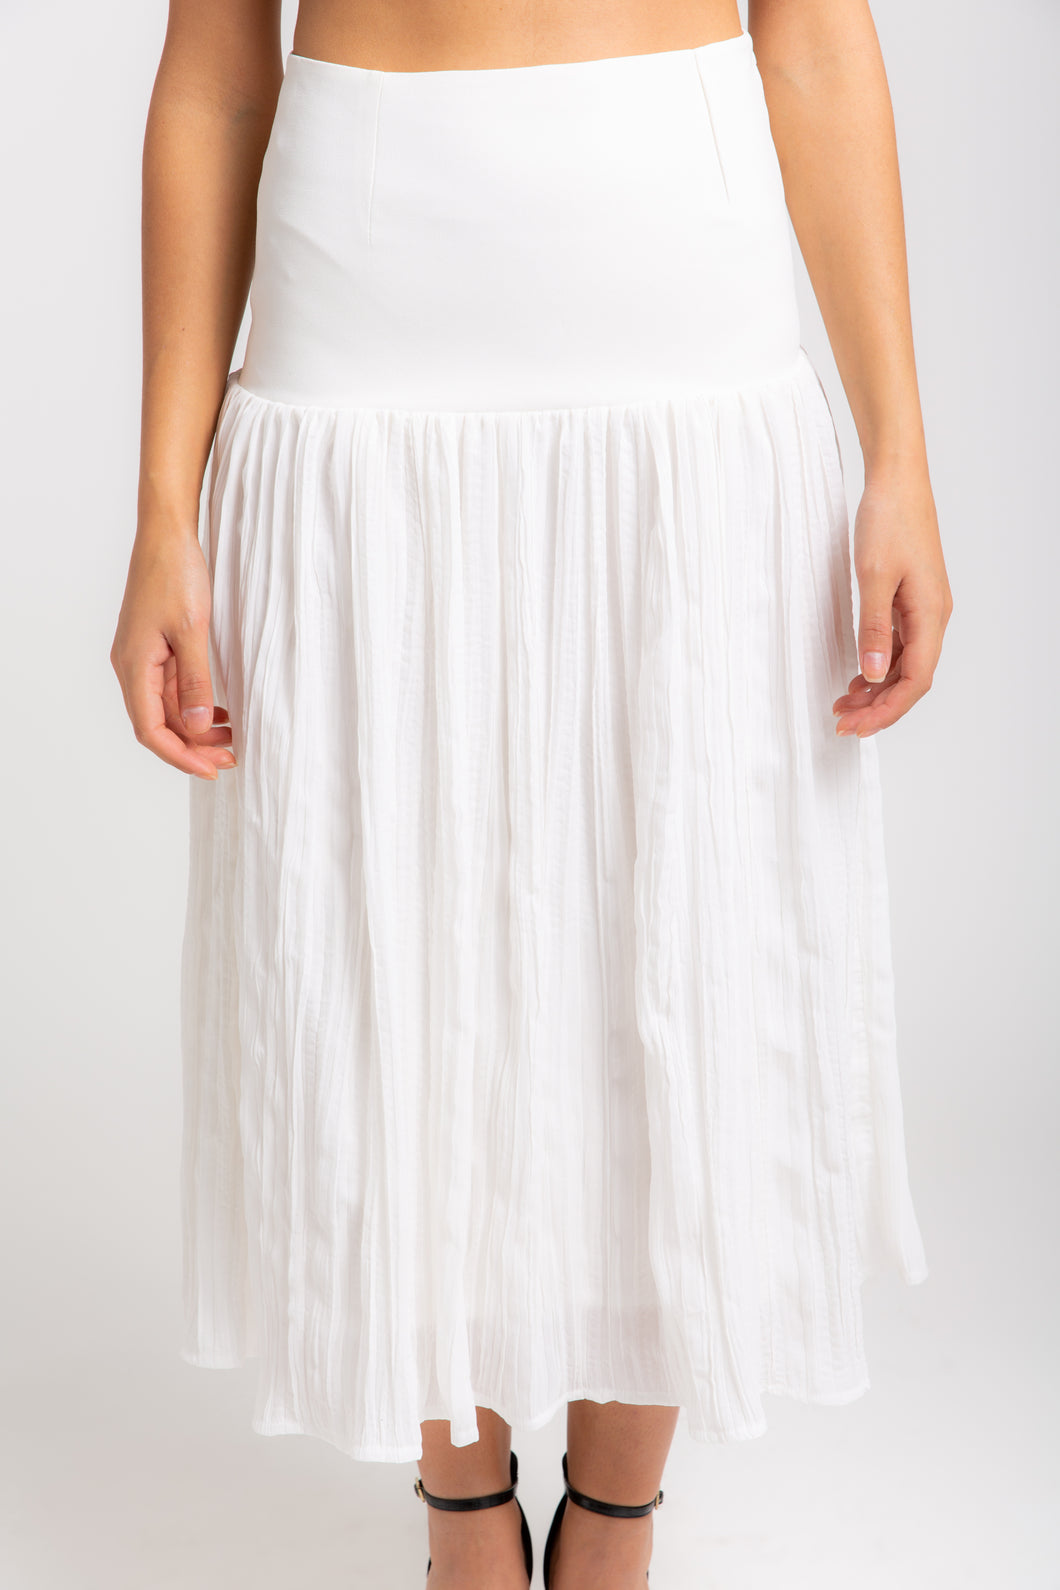 ALIA - Crepe mix Skirt